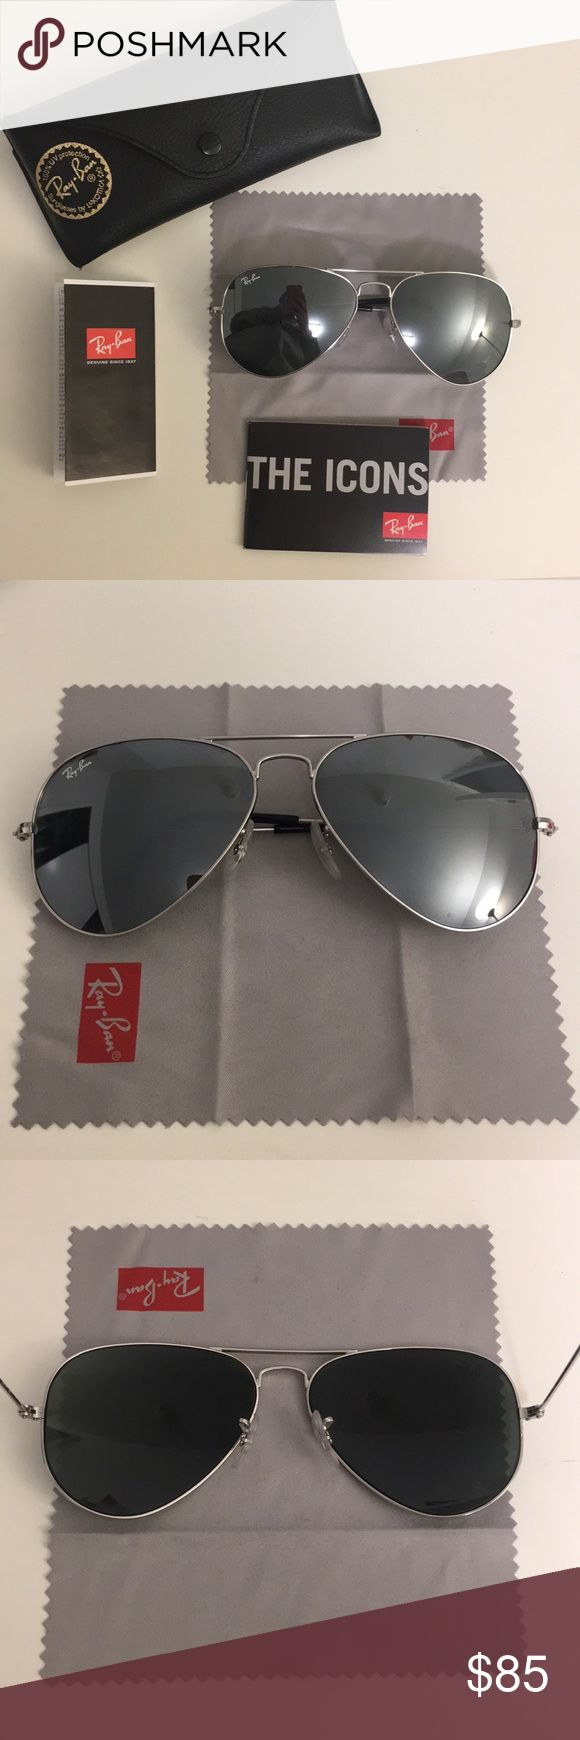 Ray-Ban Classic Aviators with silver mirror lenses Ray-Ban Classic Aviators in excellent condition, only worn twice - ZERO scratches! Silver frame with silver mirror lenses Lightweight and stylish Comes with original case, lens cleaning cloth and pamphlets 58mm. Technically unisex, but I have a smaller face and they looked great (see second pic) Inscription on left: RB 3025 AVIATOR LARGE METAL W 3277 58014 3N Inscription on right: Ray-Ban MADE IN ITALY Ray-Ban Accessories Sunglasses